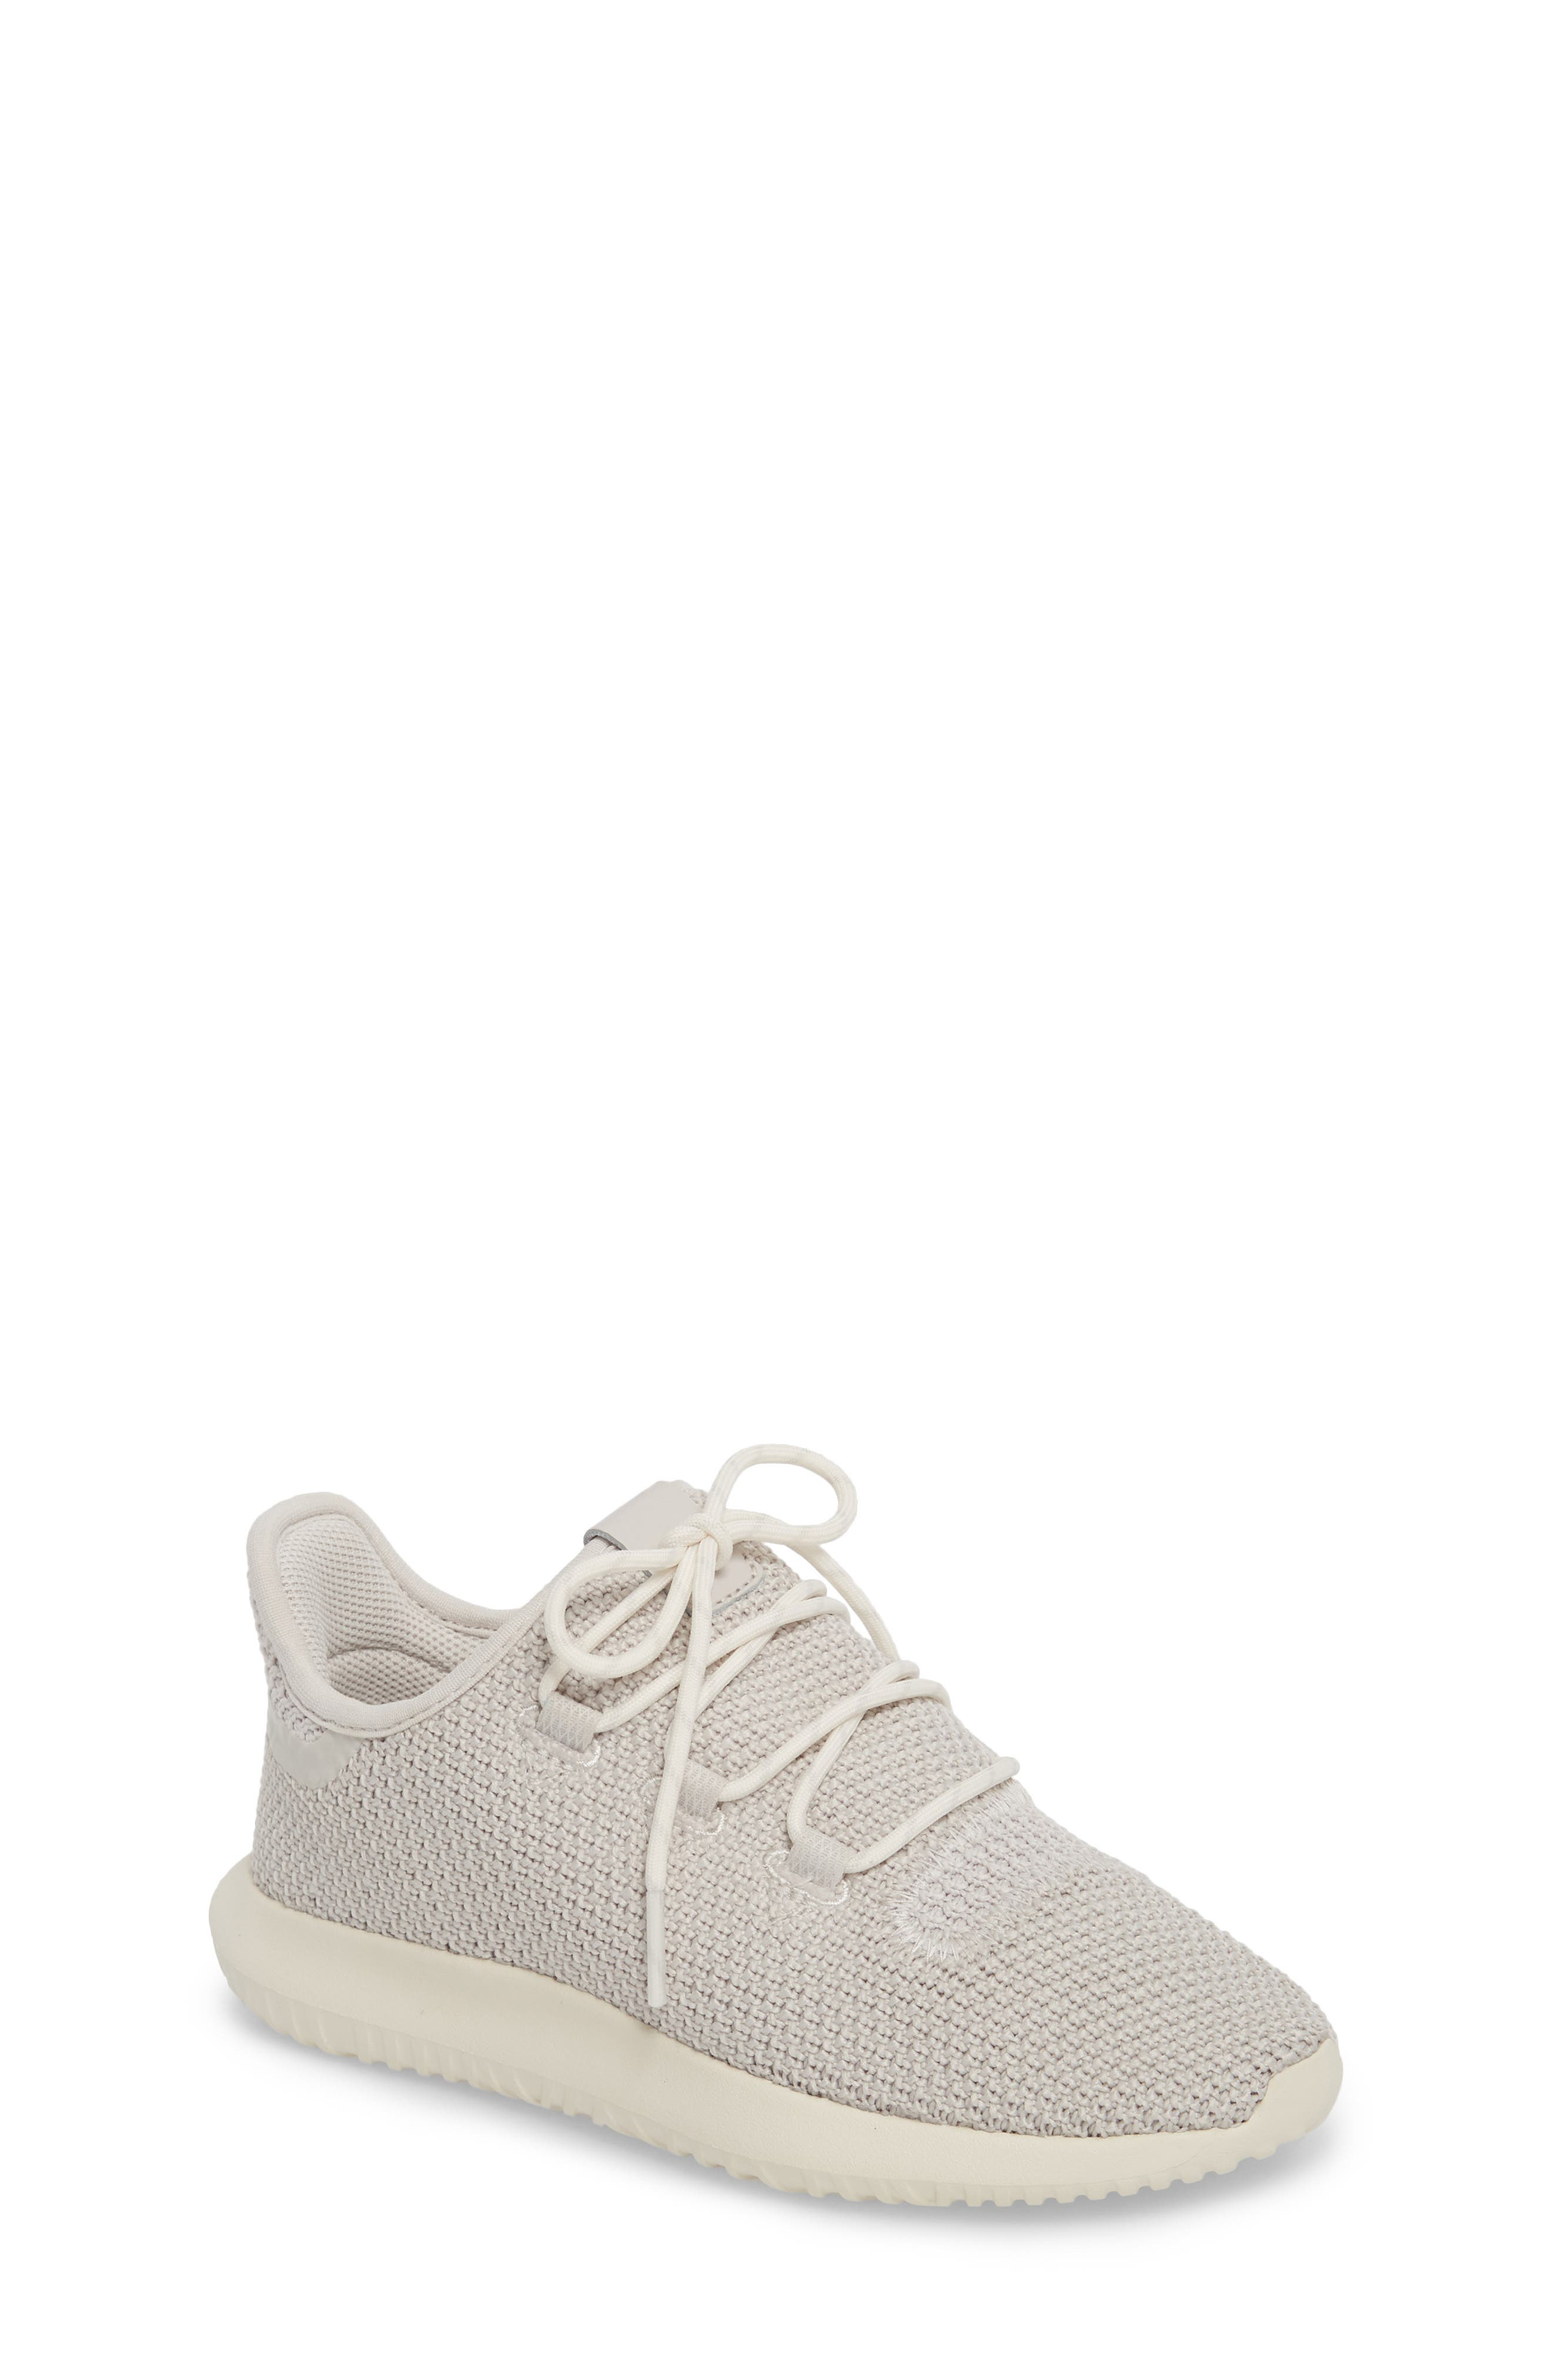 Tubular Shadow Sneaker,                         Main,                         color, Chalk Pearl/ Chalk White